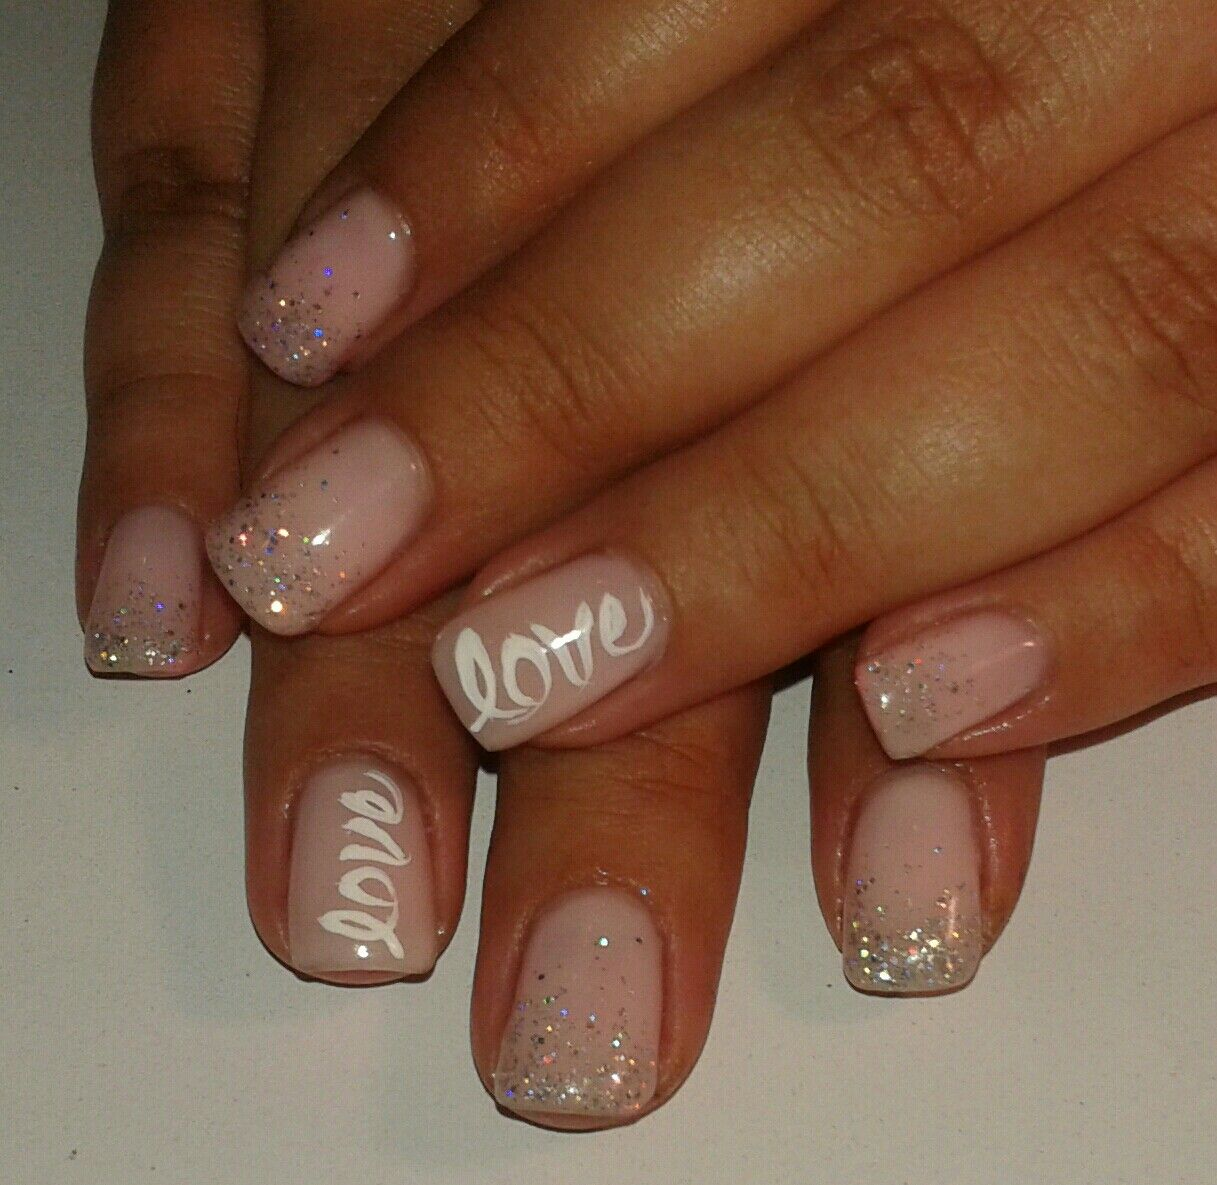 hard gel overlay on natural nail with gel polish, OPI bubble bath ...